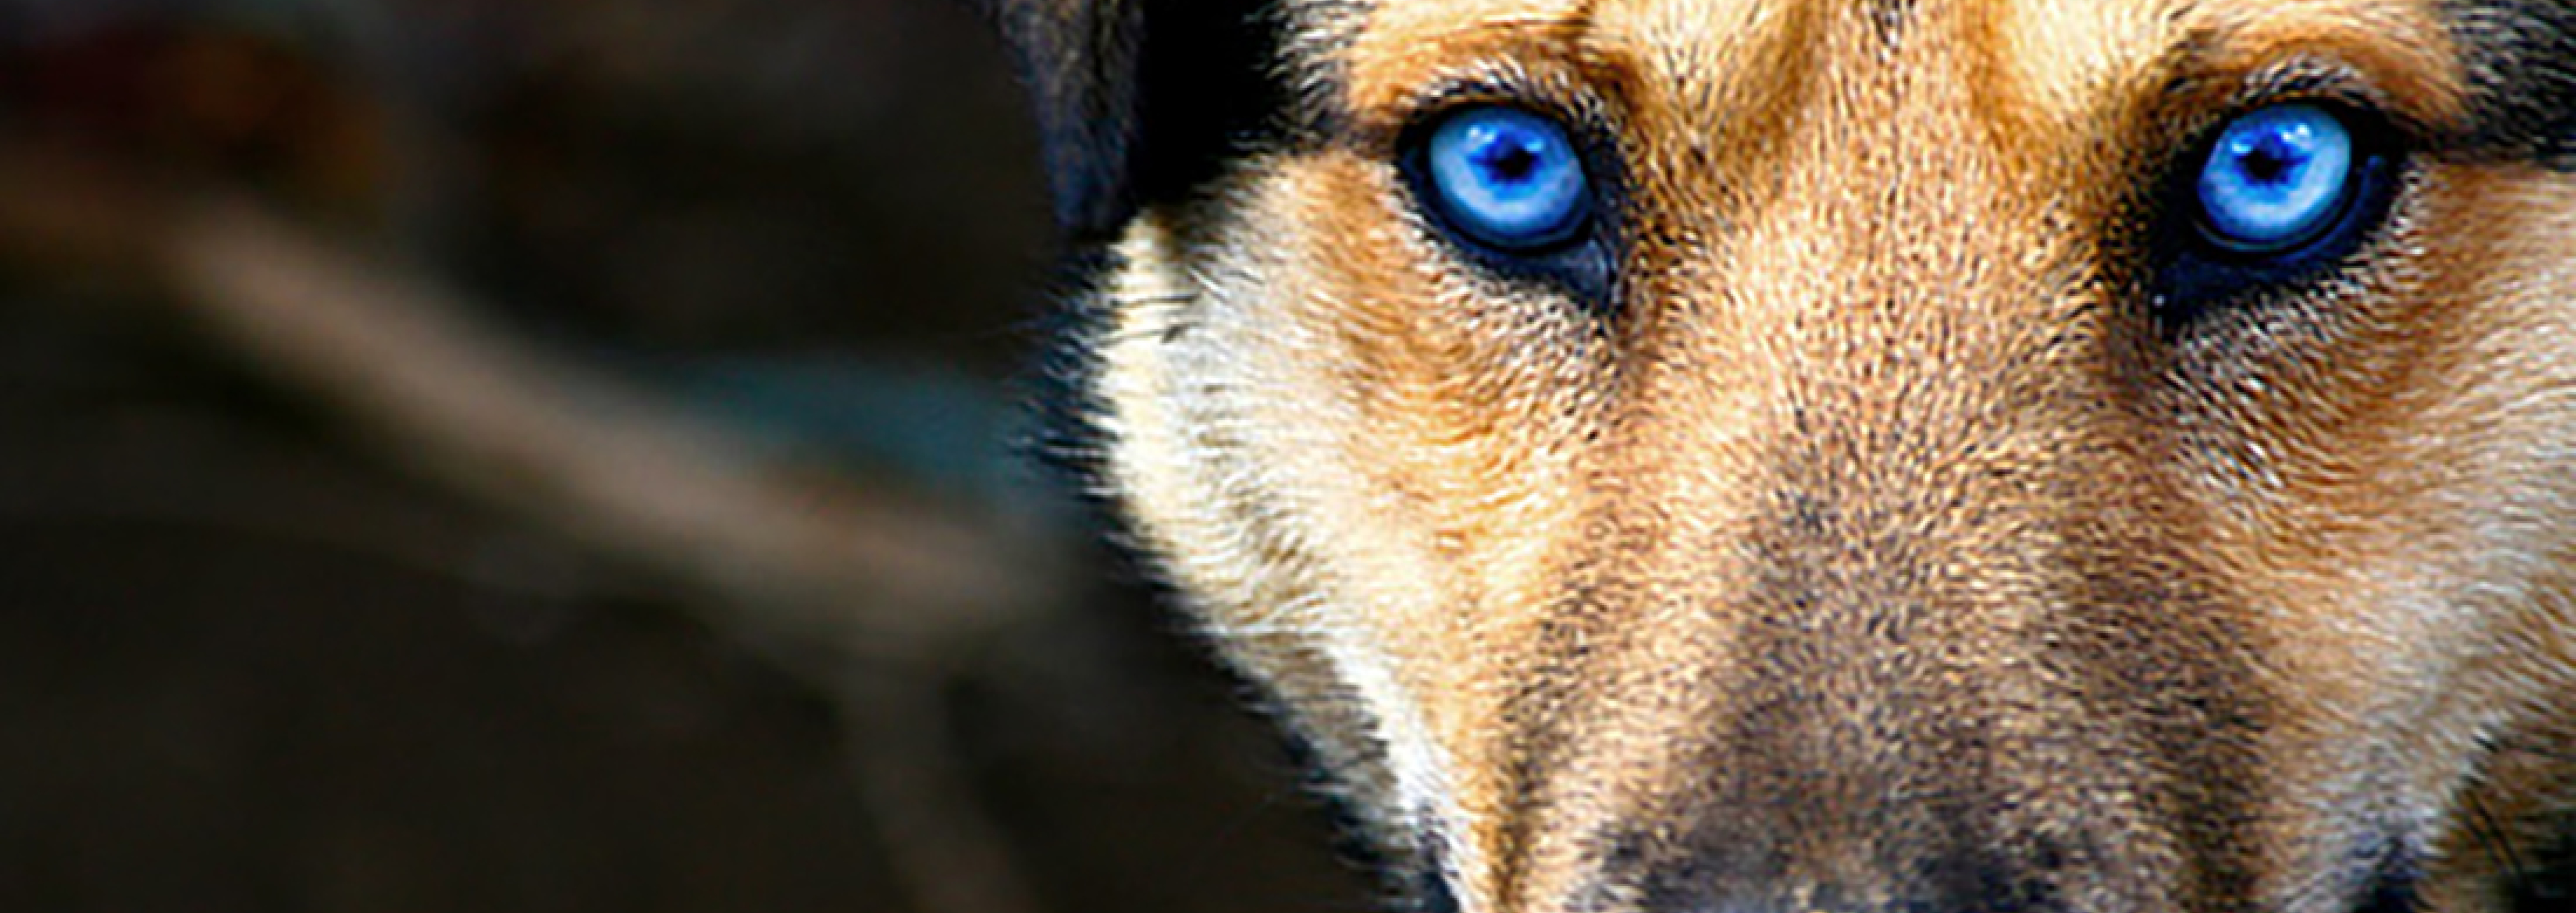 Blue Puppy Food >> The Evolution of Pet Ownership | PEDIGREE®